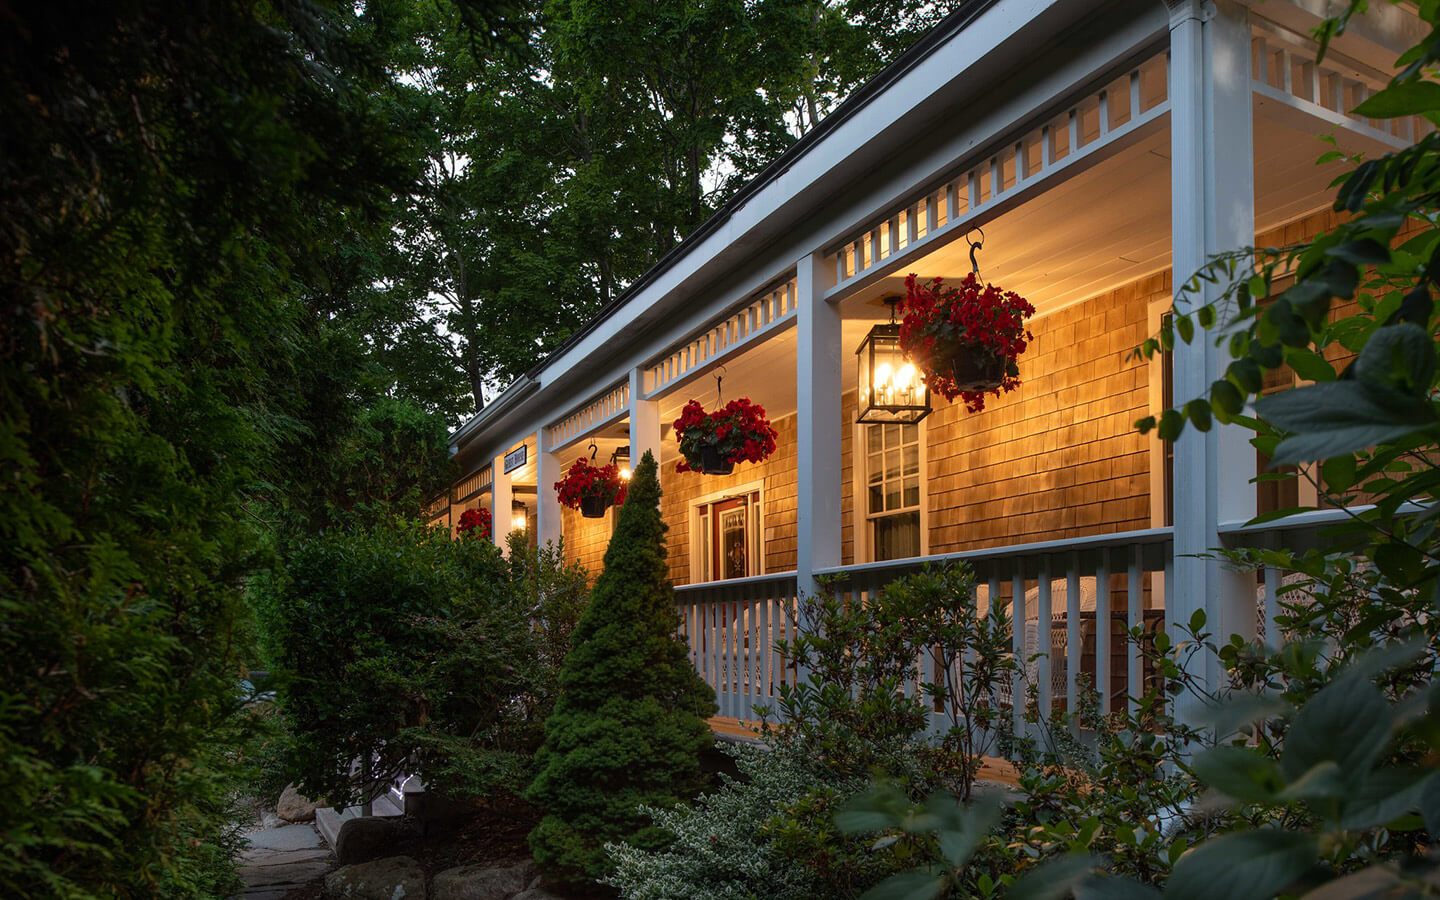 The porch in the evening at our B&B in Cape Cod MA